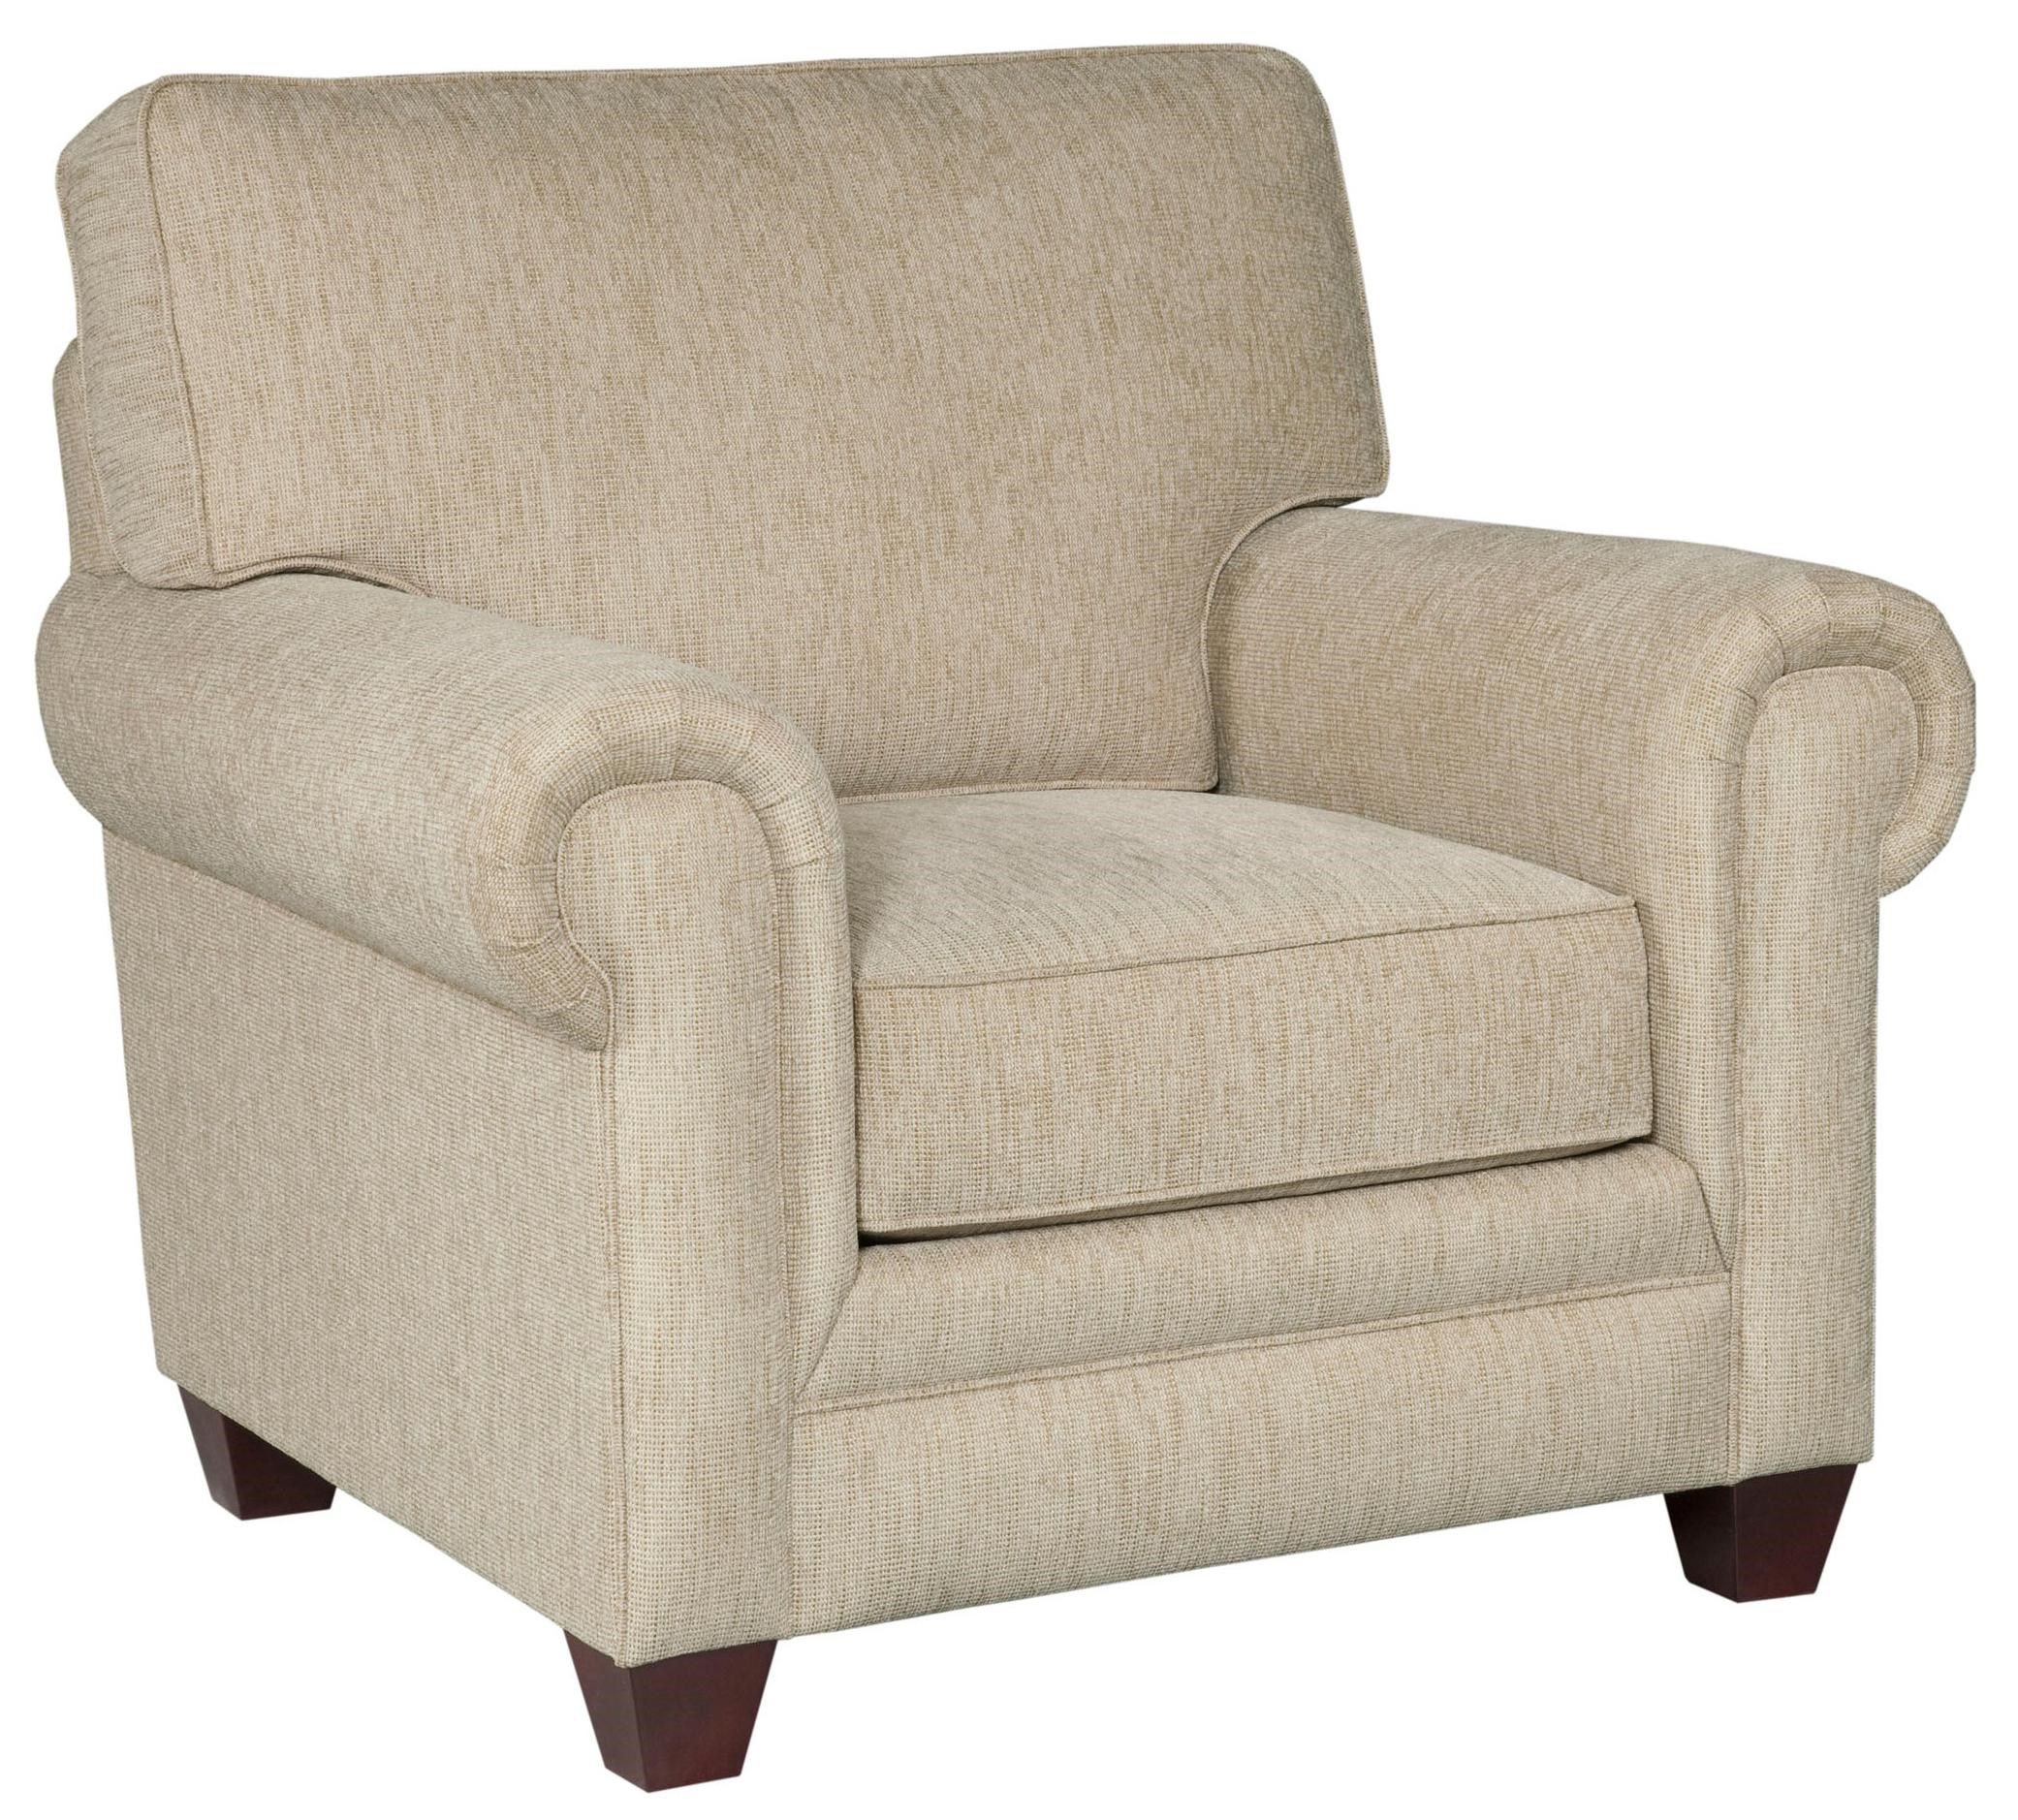 Broyhill Furniture Monica Transitional Upholstered Arm